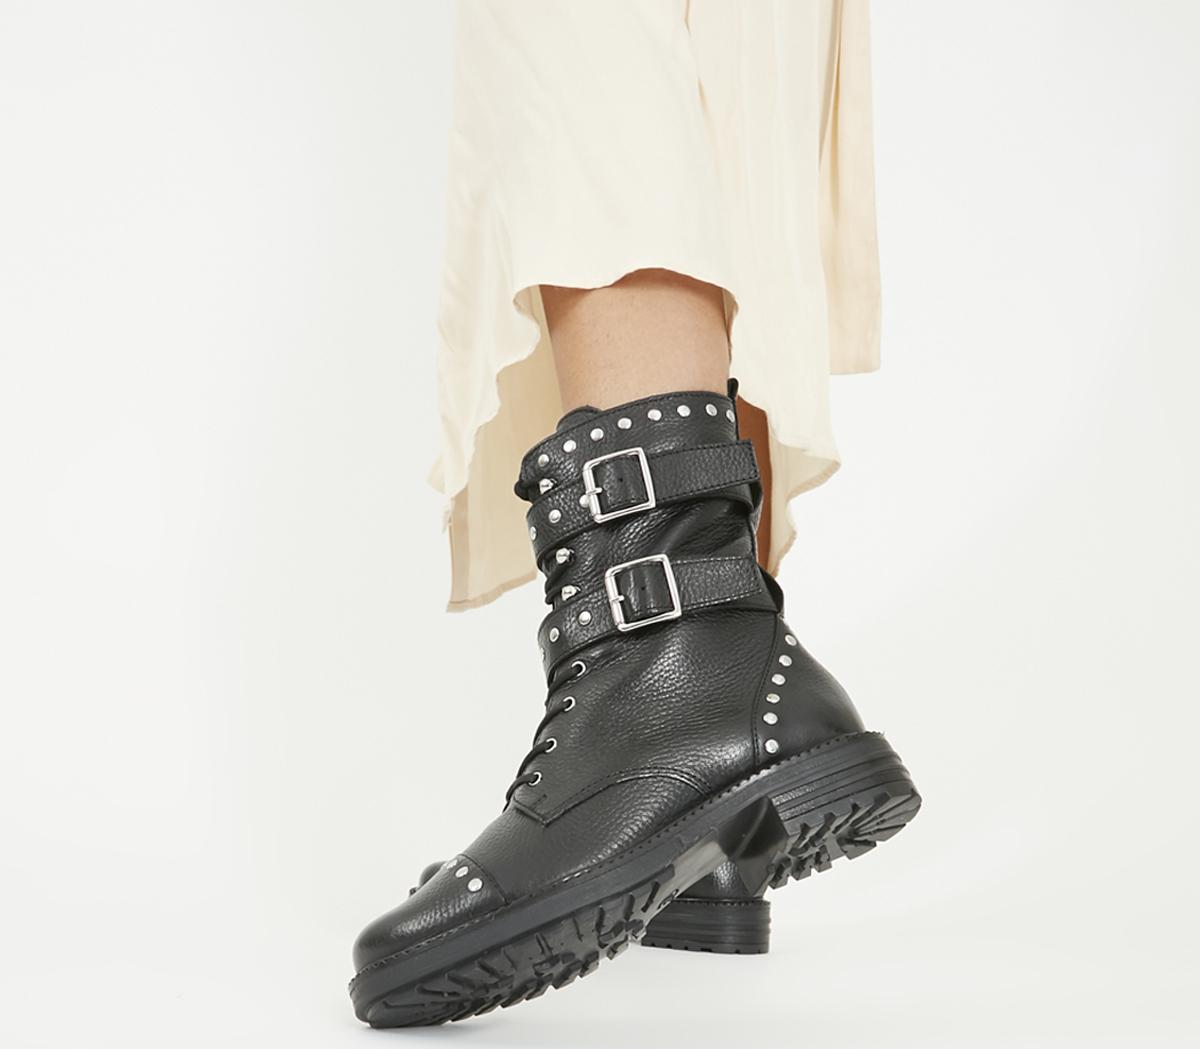 Another High Cut Lace Up Boots